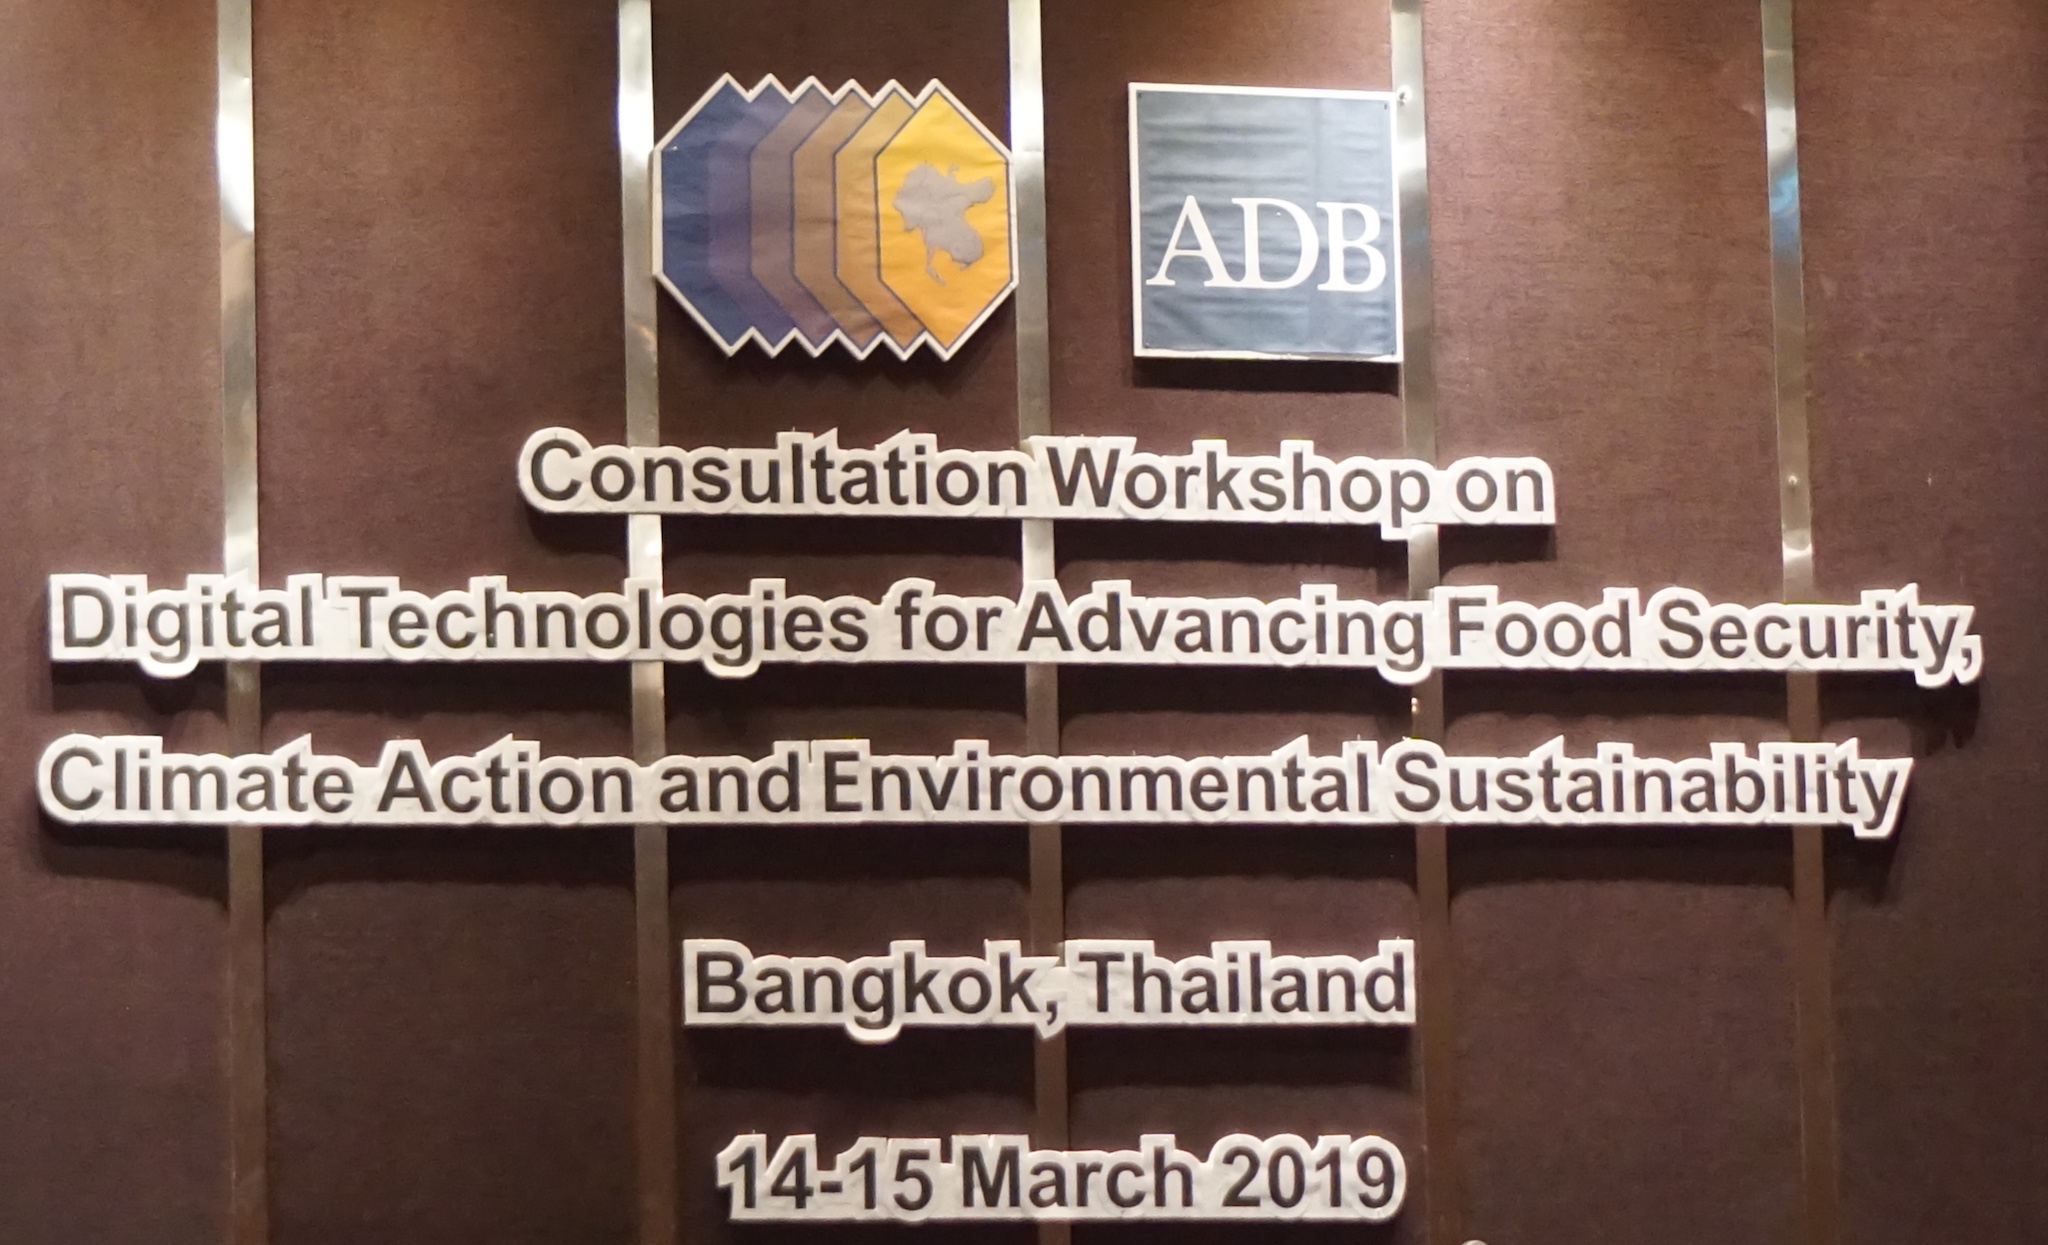 SIVIRA was invited to an international workshop sponsored by the Asian Development Bank and gave a lecture.